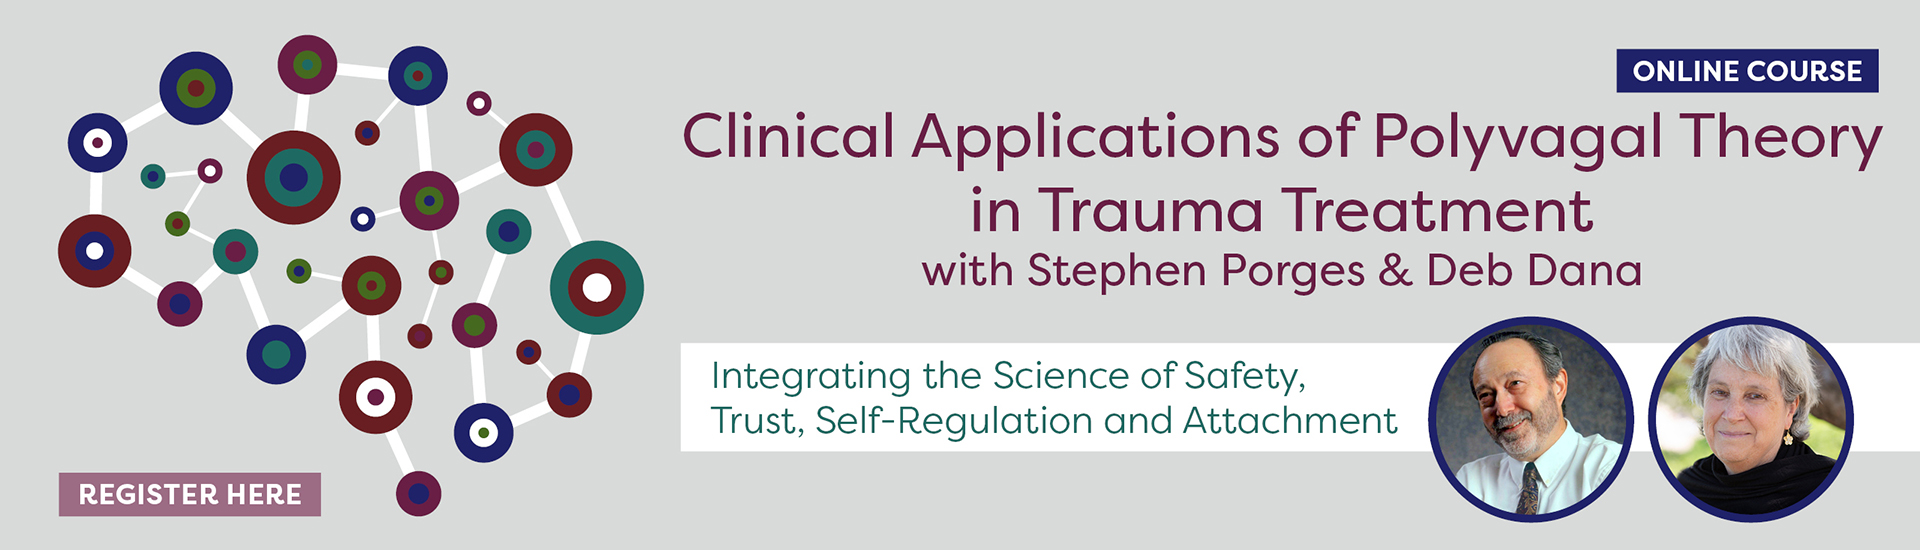 Clinical Applications of Polyvagal Theory in Trauma Treatment